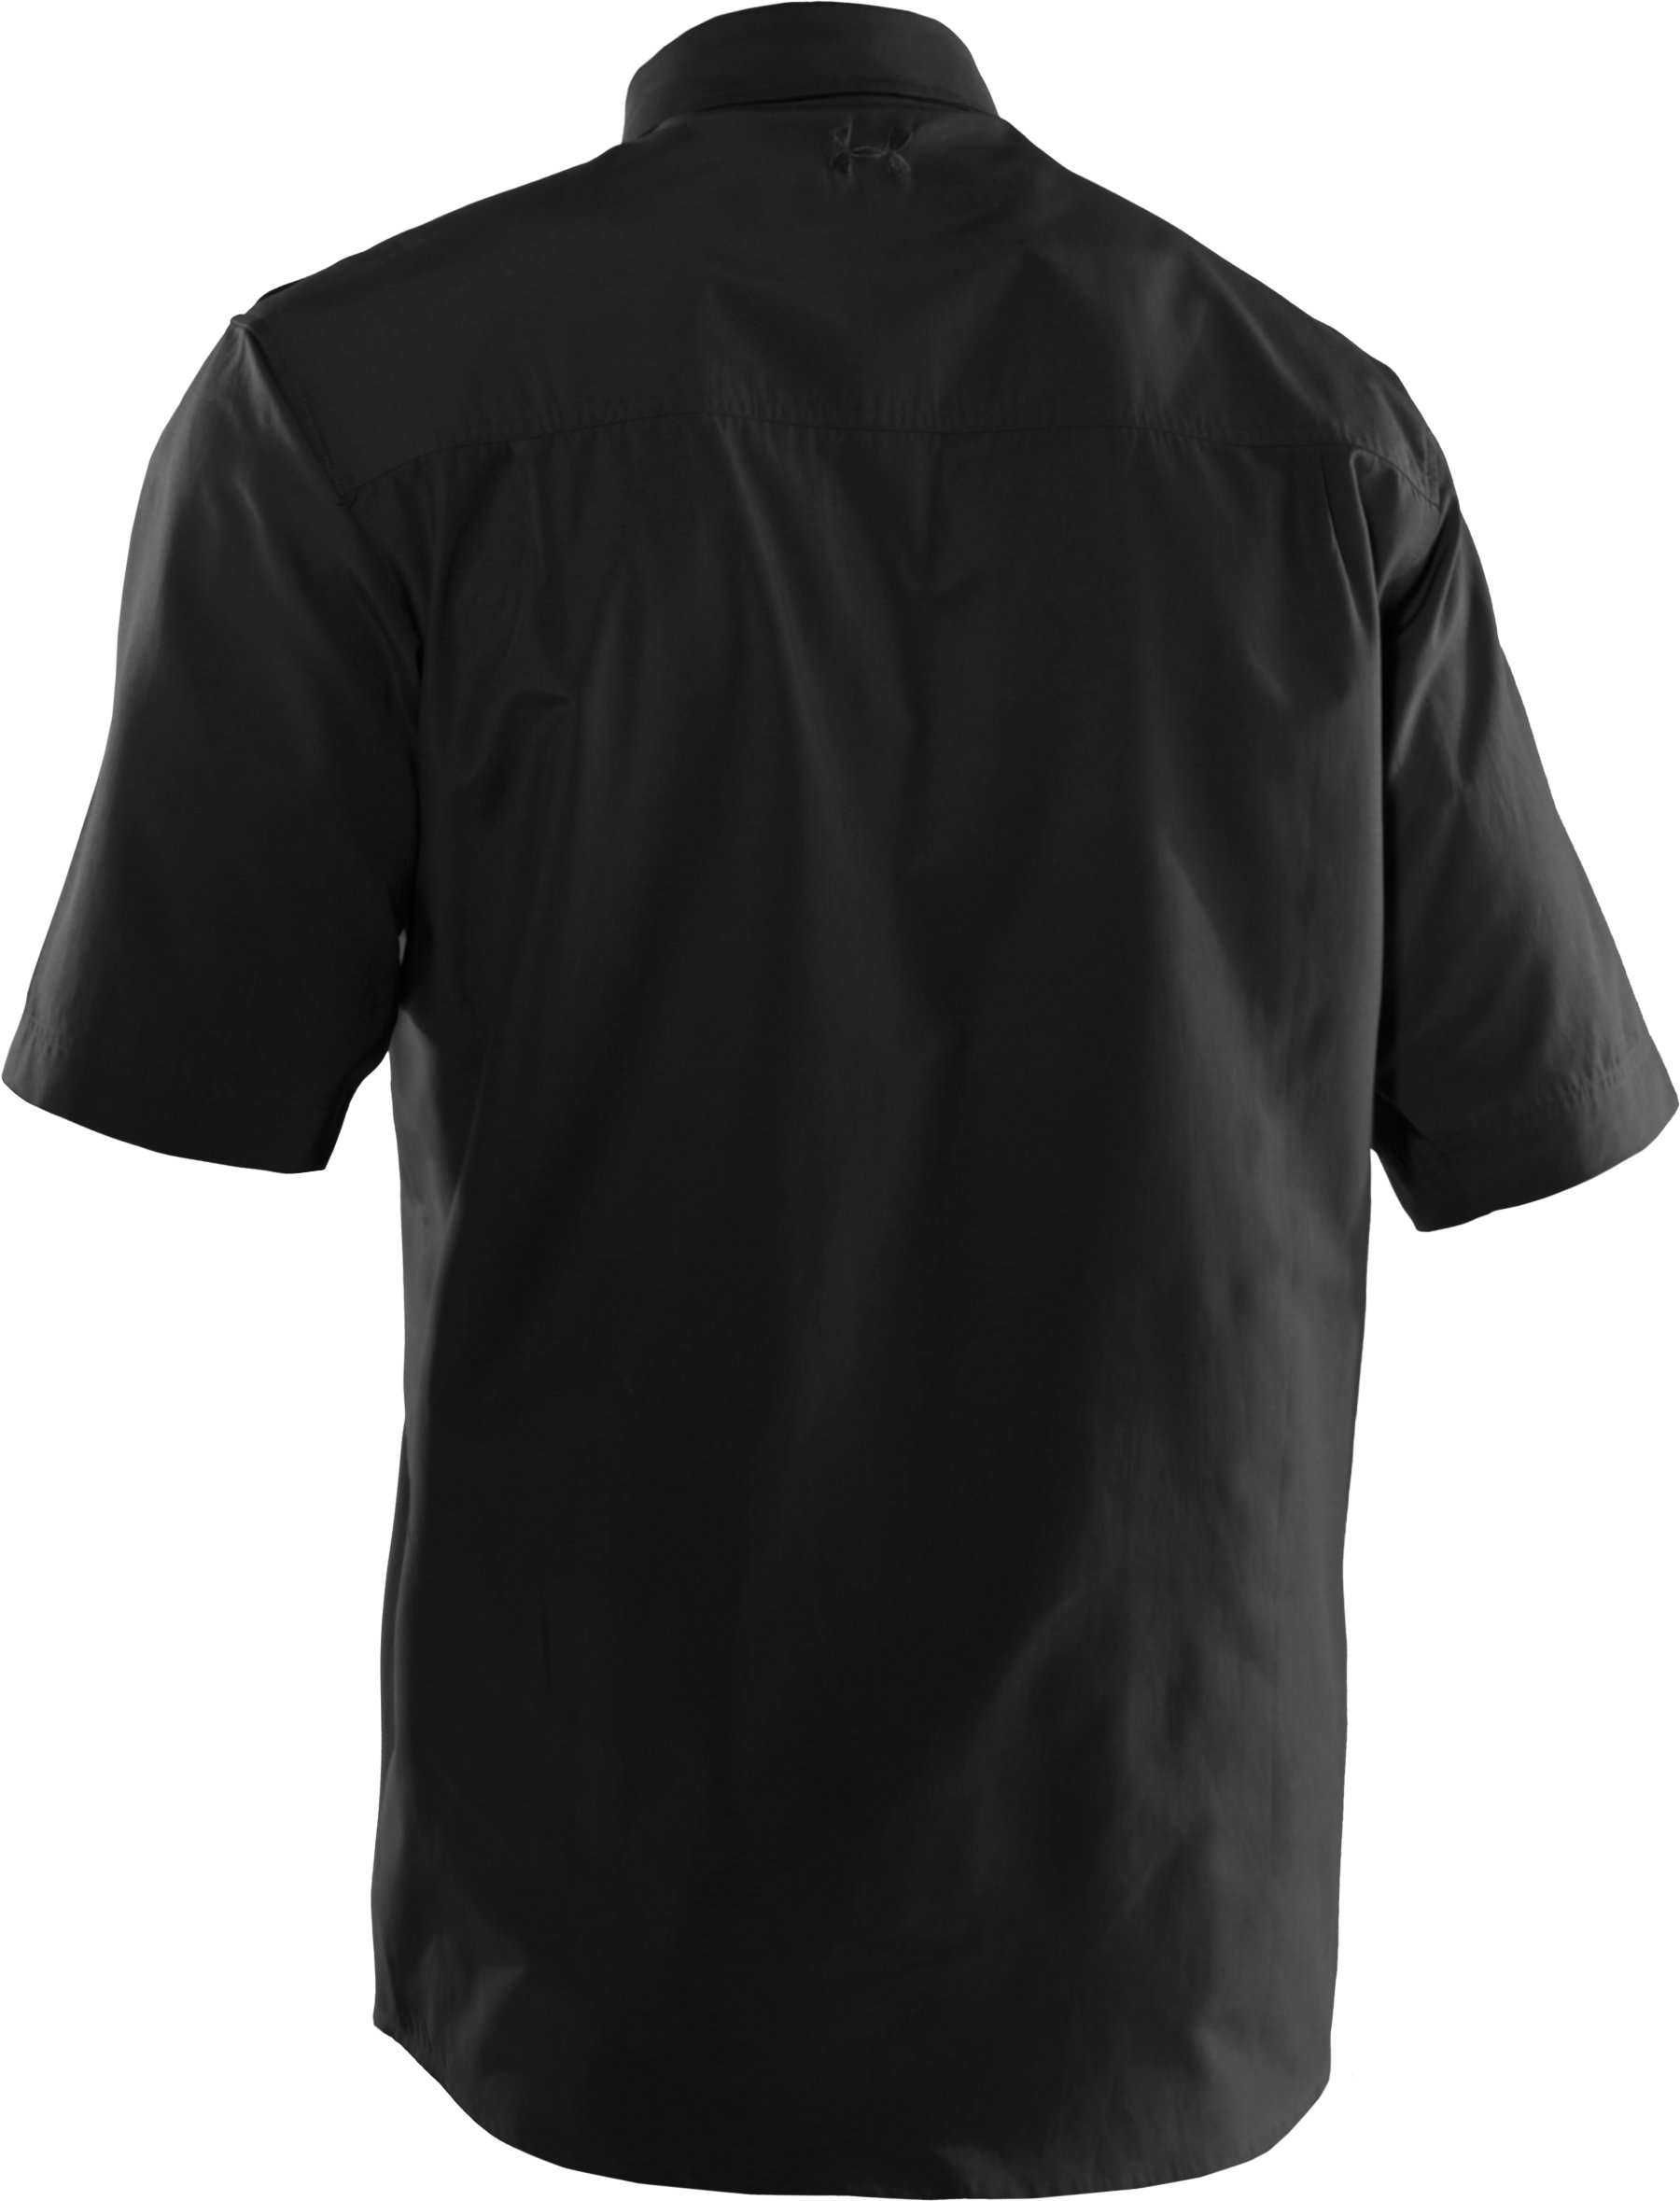 Men's Counter Short Sleeve Tactical Shirt, Black , undefined